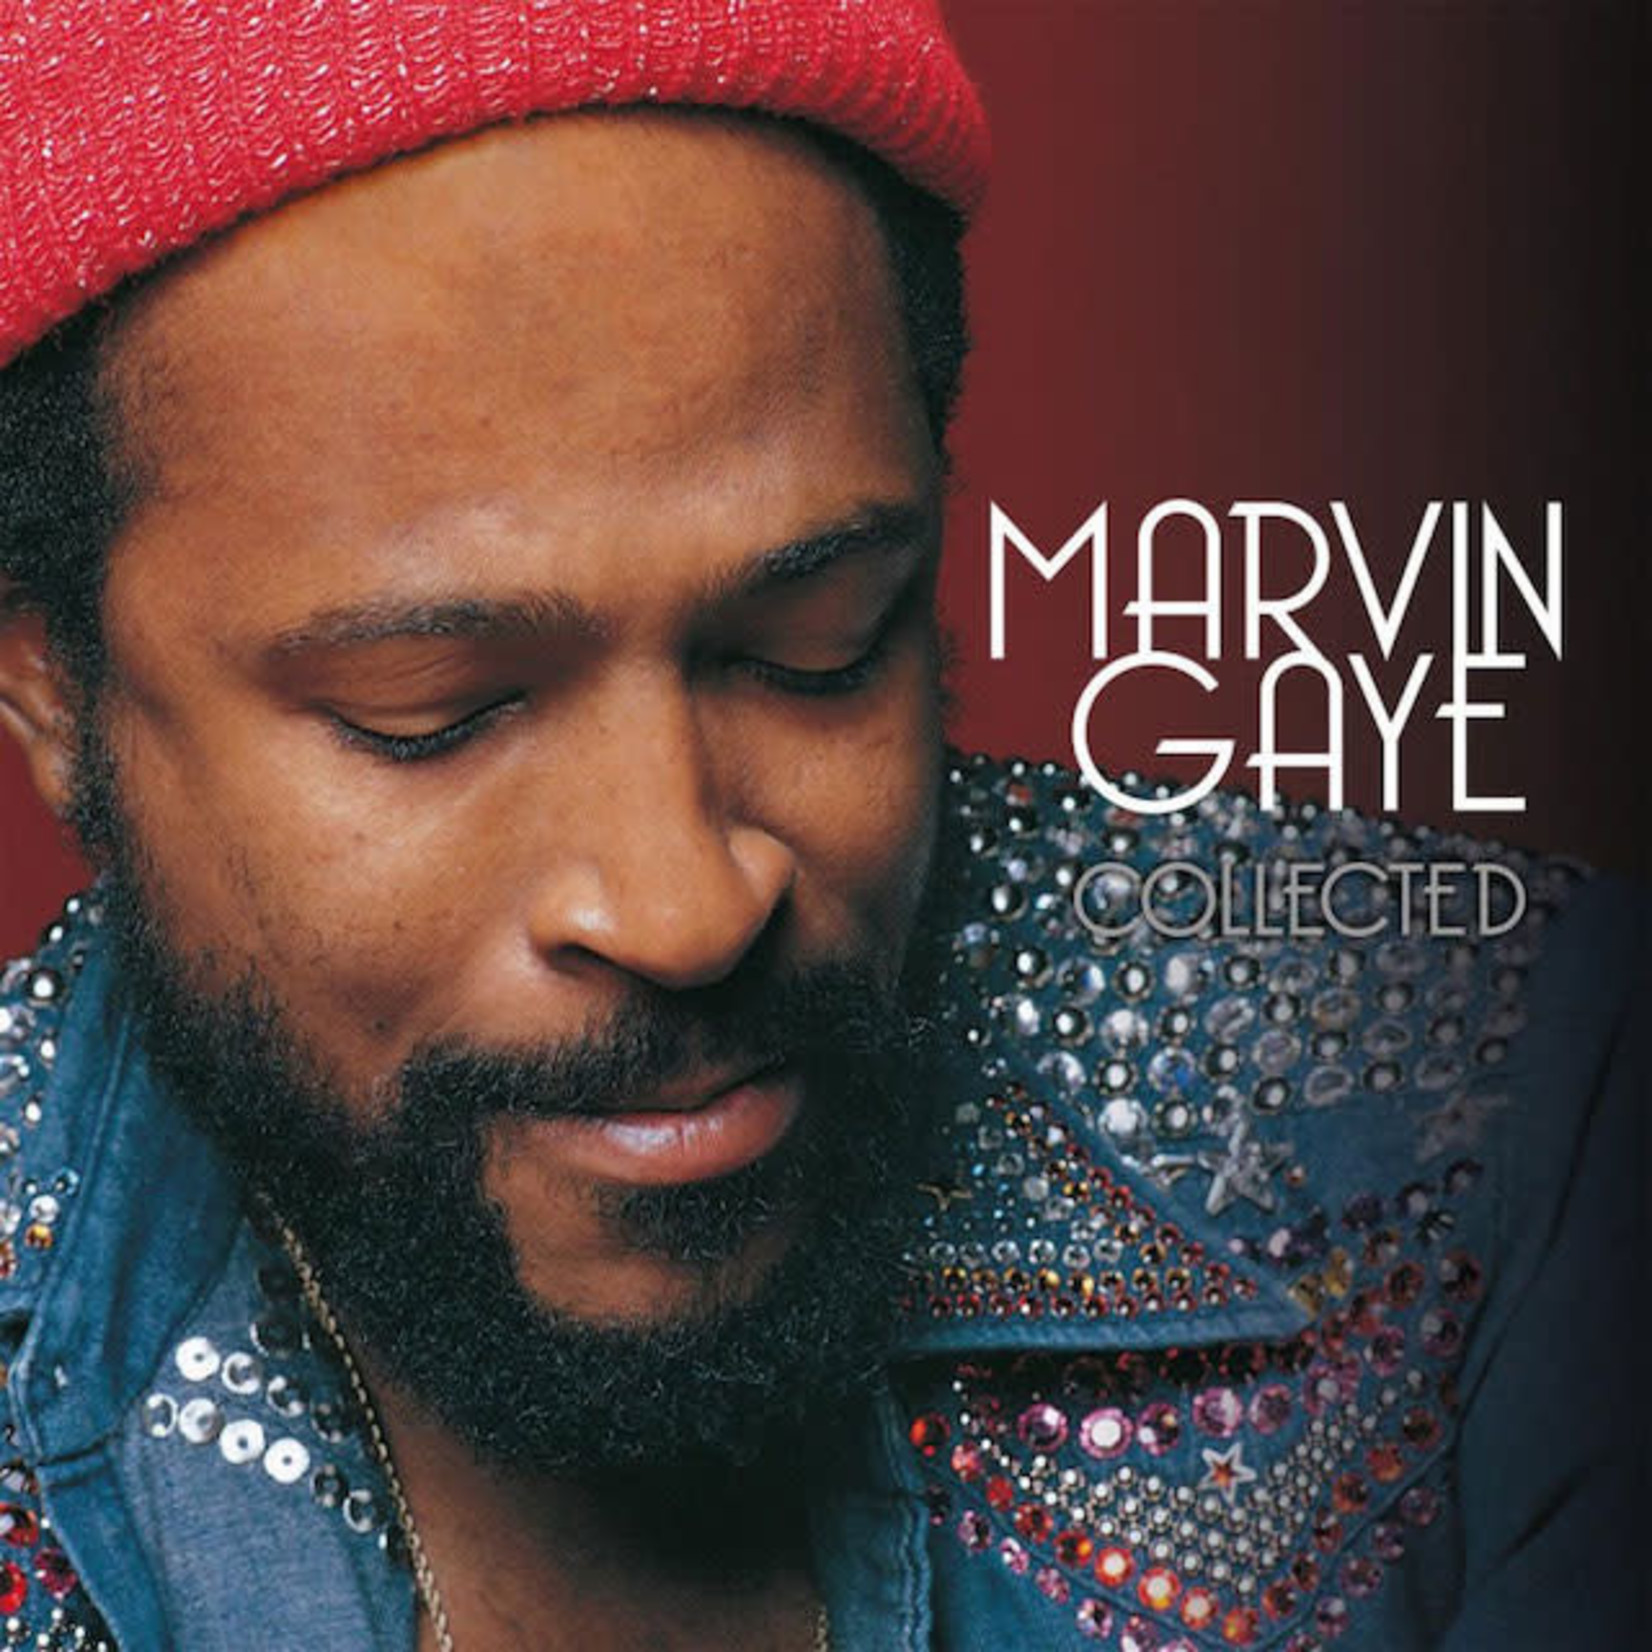 Vinyl Marvin Gaye - Collected